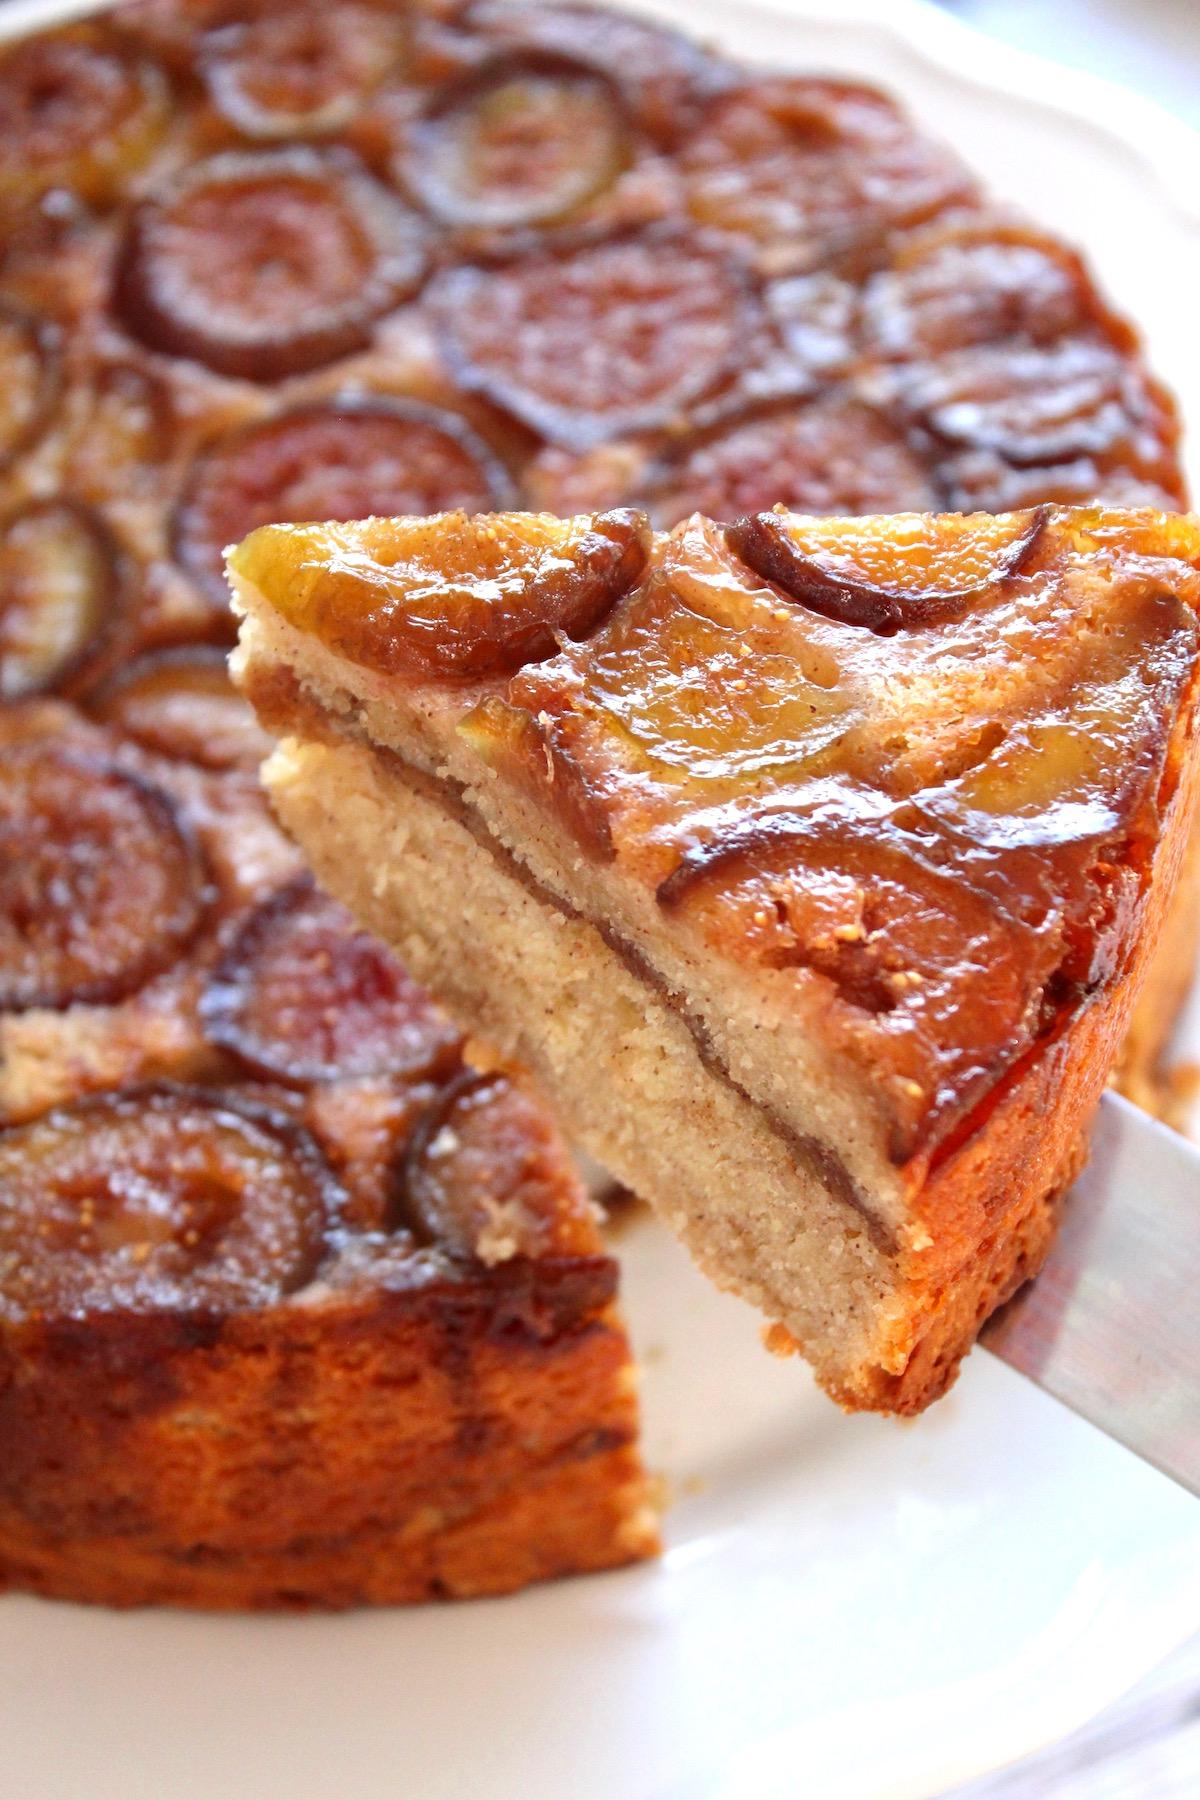 Fig cake with one slice being llifted from whole cake